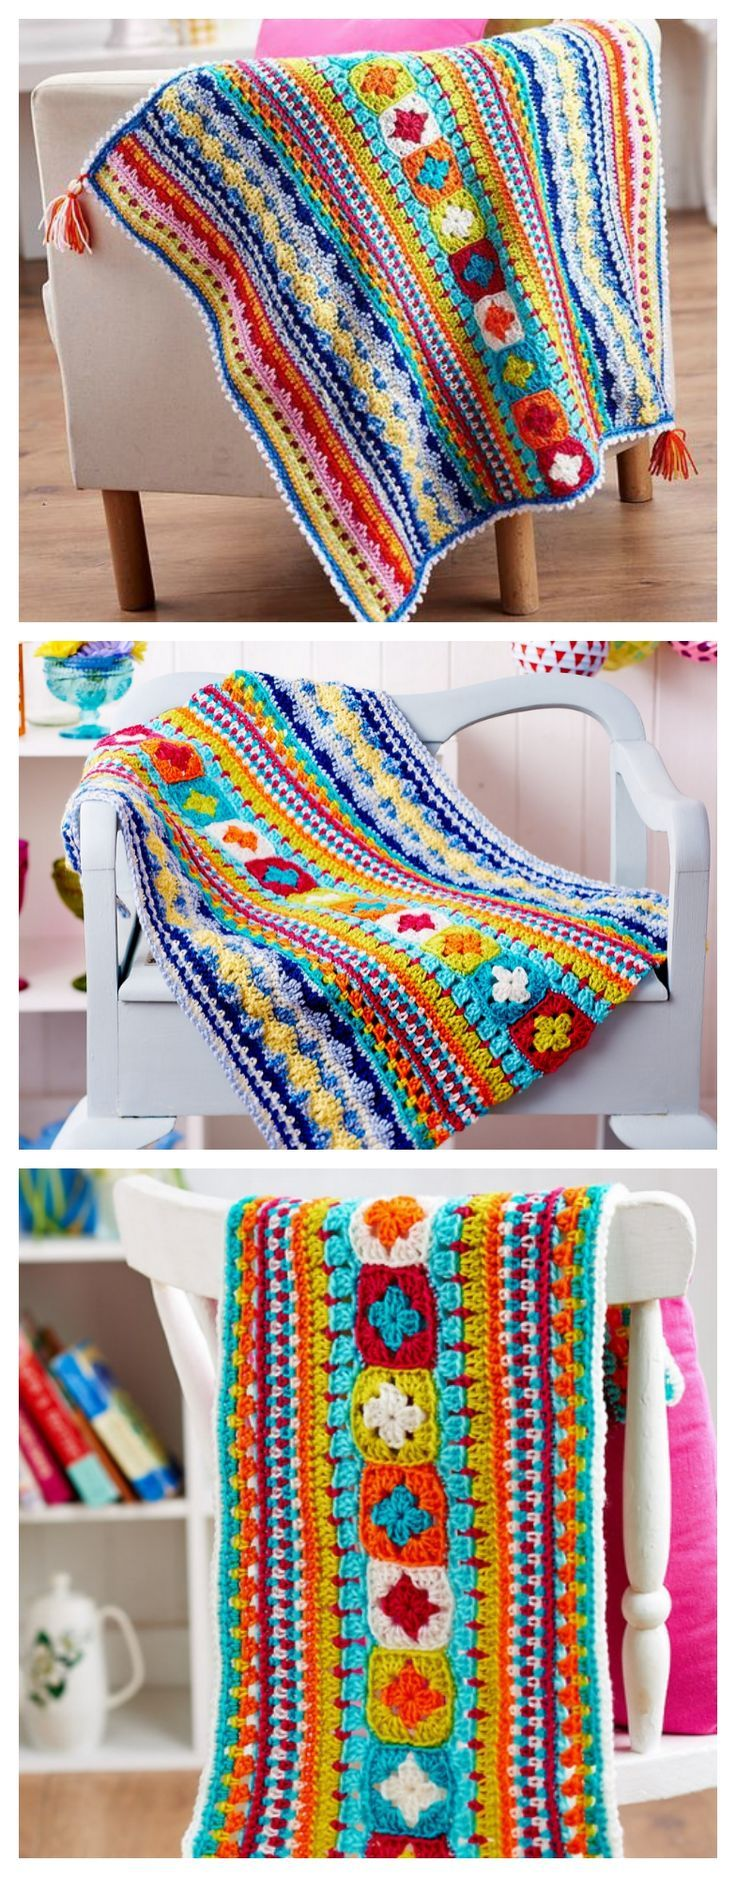 FREE PATTERN: 3-part  Crochet Sampler Blanket ༺: